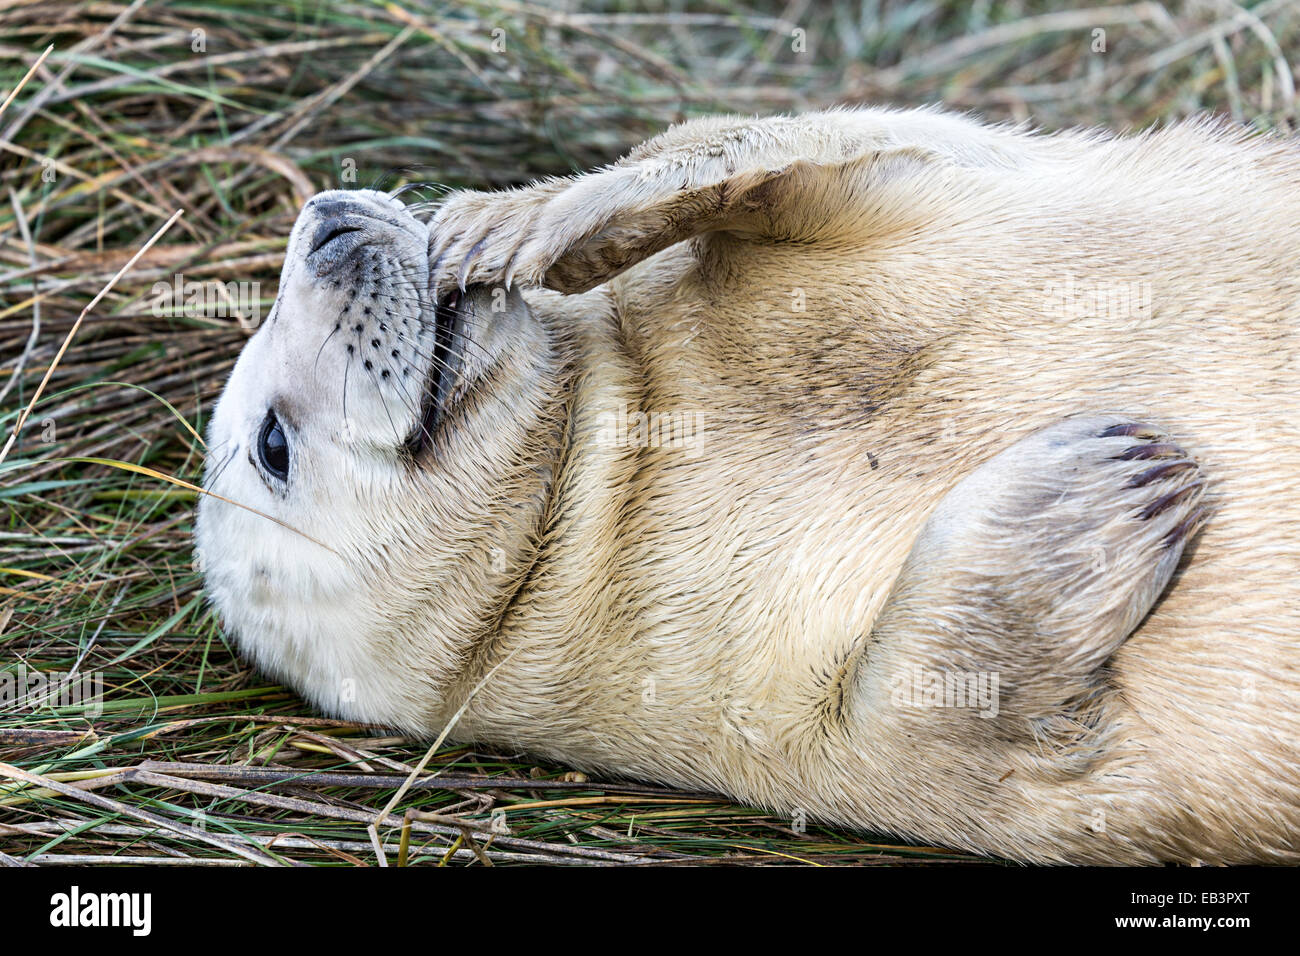 Grey seal pup, Halichoerus grypus, Donna Nook national nature reserve, Lincolnshire, England, UK Stock Photo